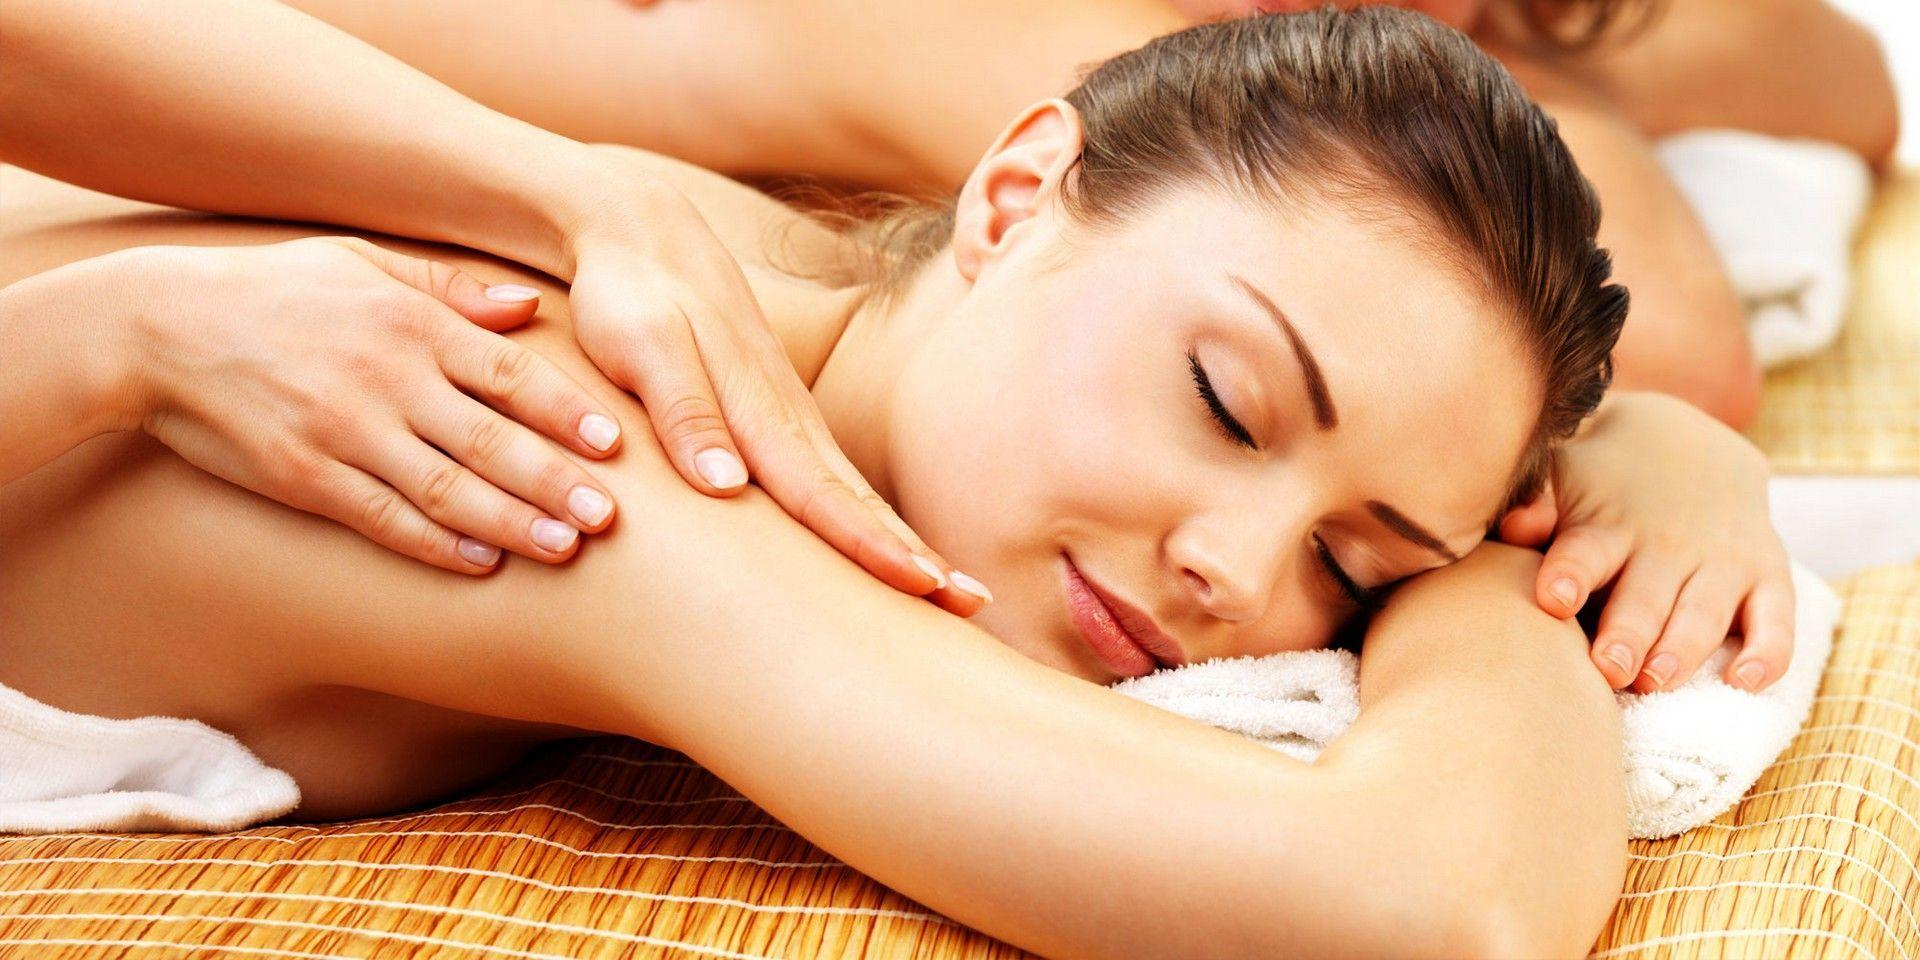 Massage wallpaper | Massage wallpapers HD | Pinterest | Wallpaper